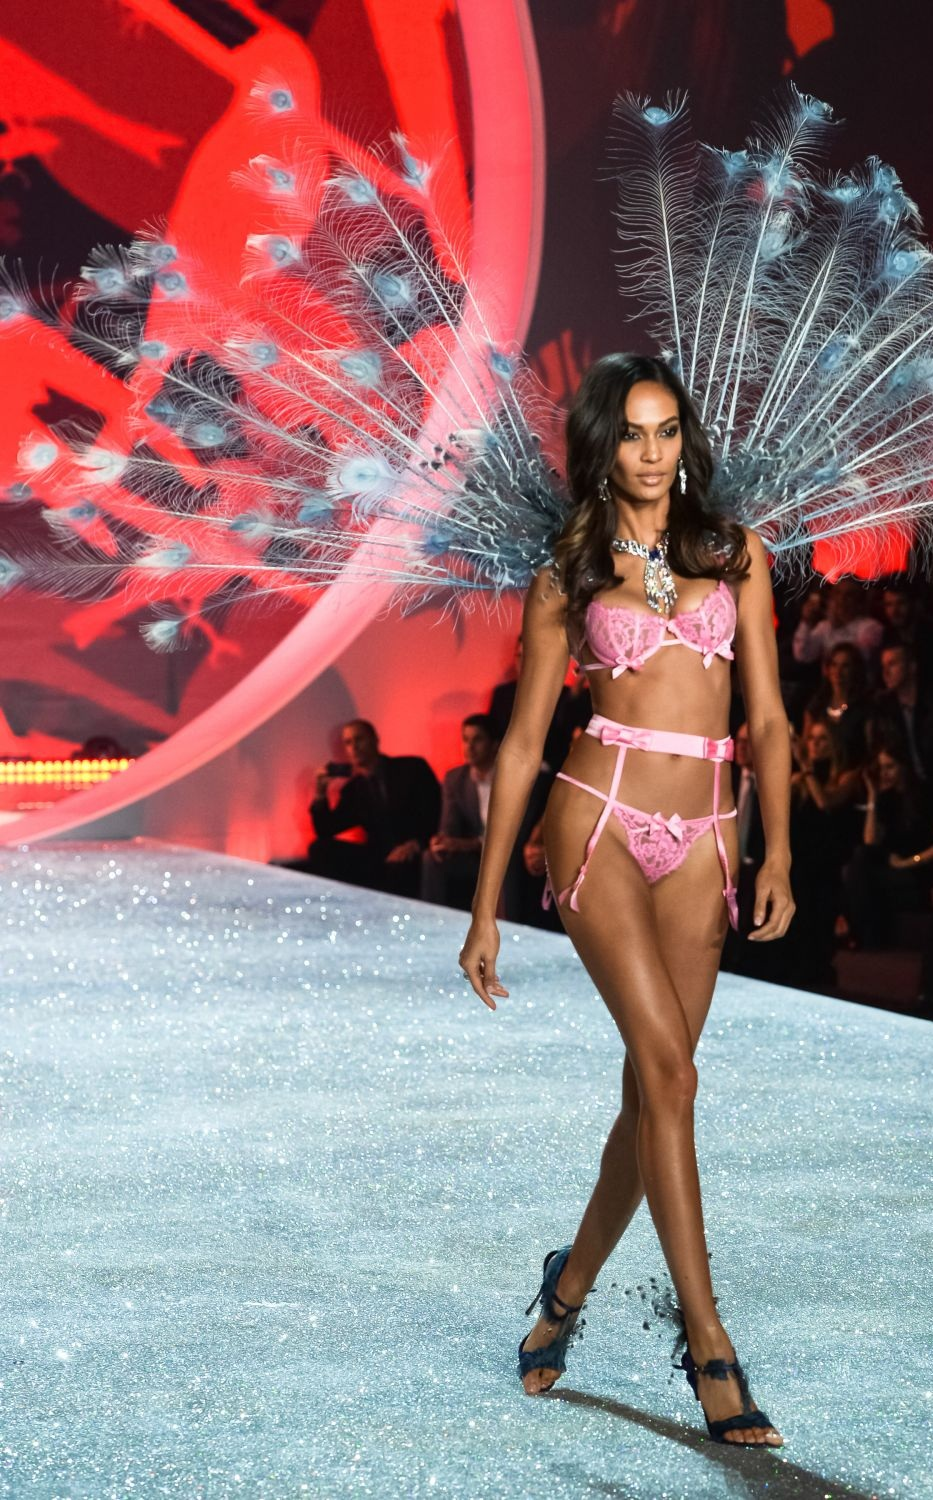 joan-smalls-at-2013-victoria-s-secret-fashion-show-in-new-york_6.jpg - 461.41 KB